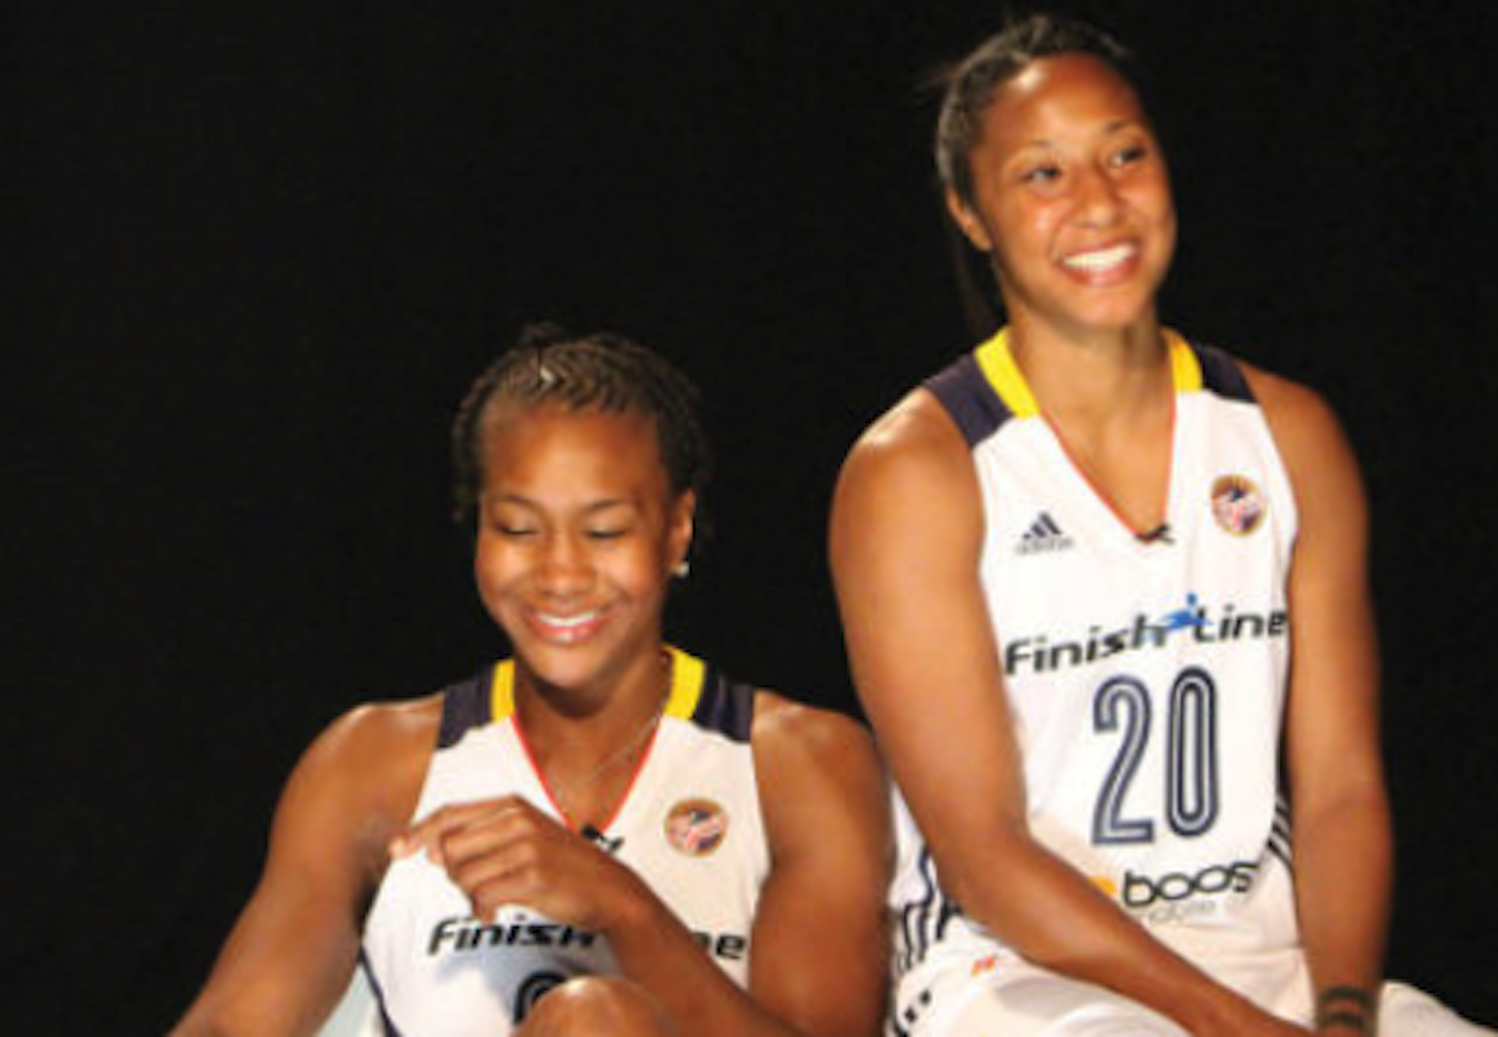 ORTHOINDY PROVIDES ORTHOPEDIC COVERAGE FOR THE INDIANA FEVER